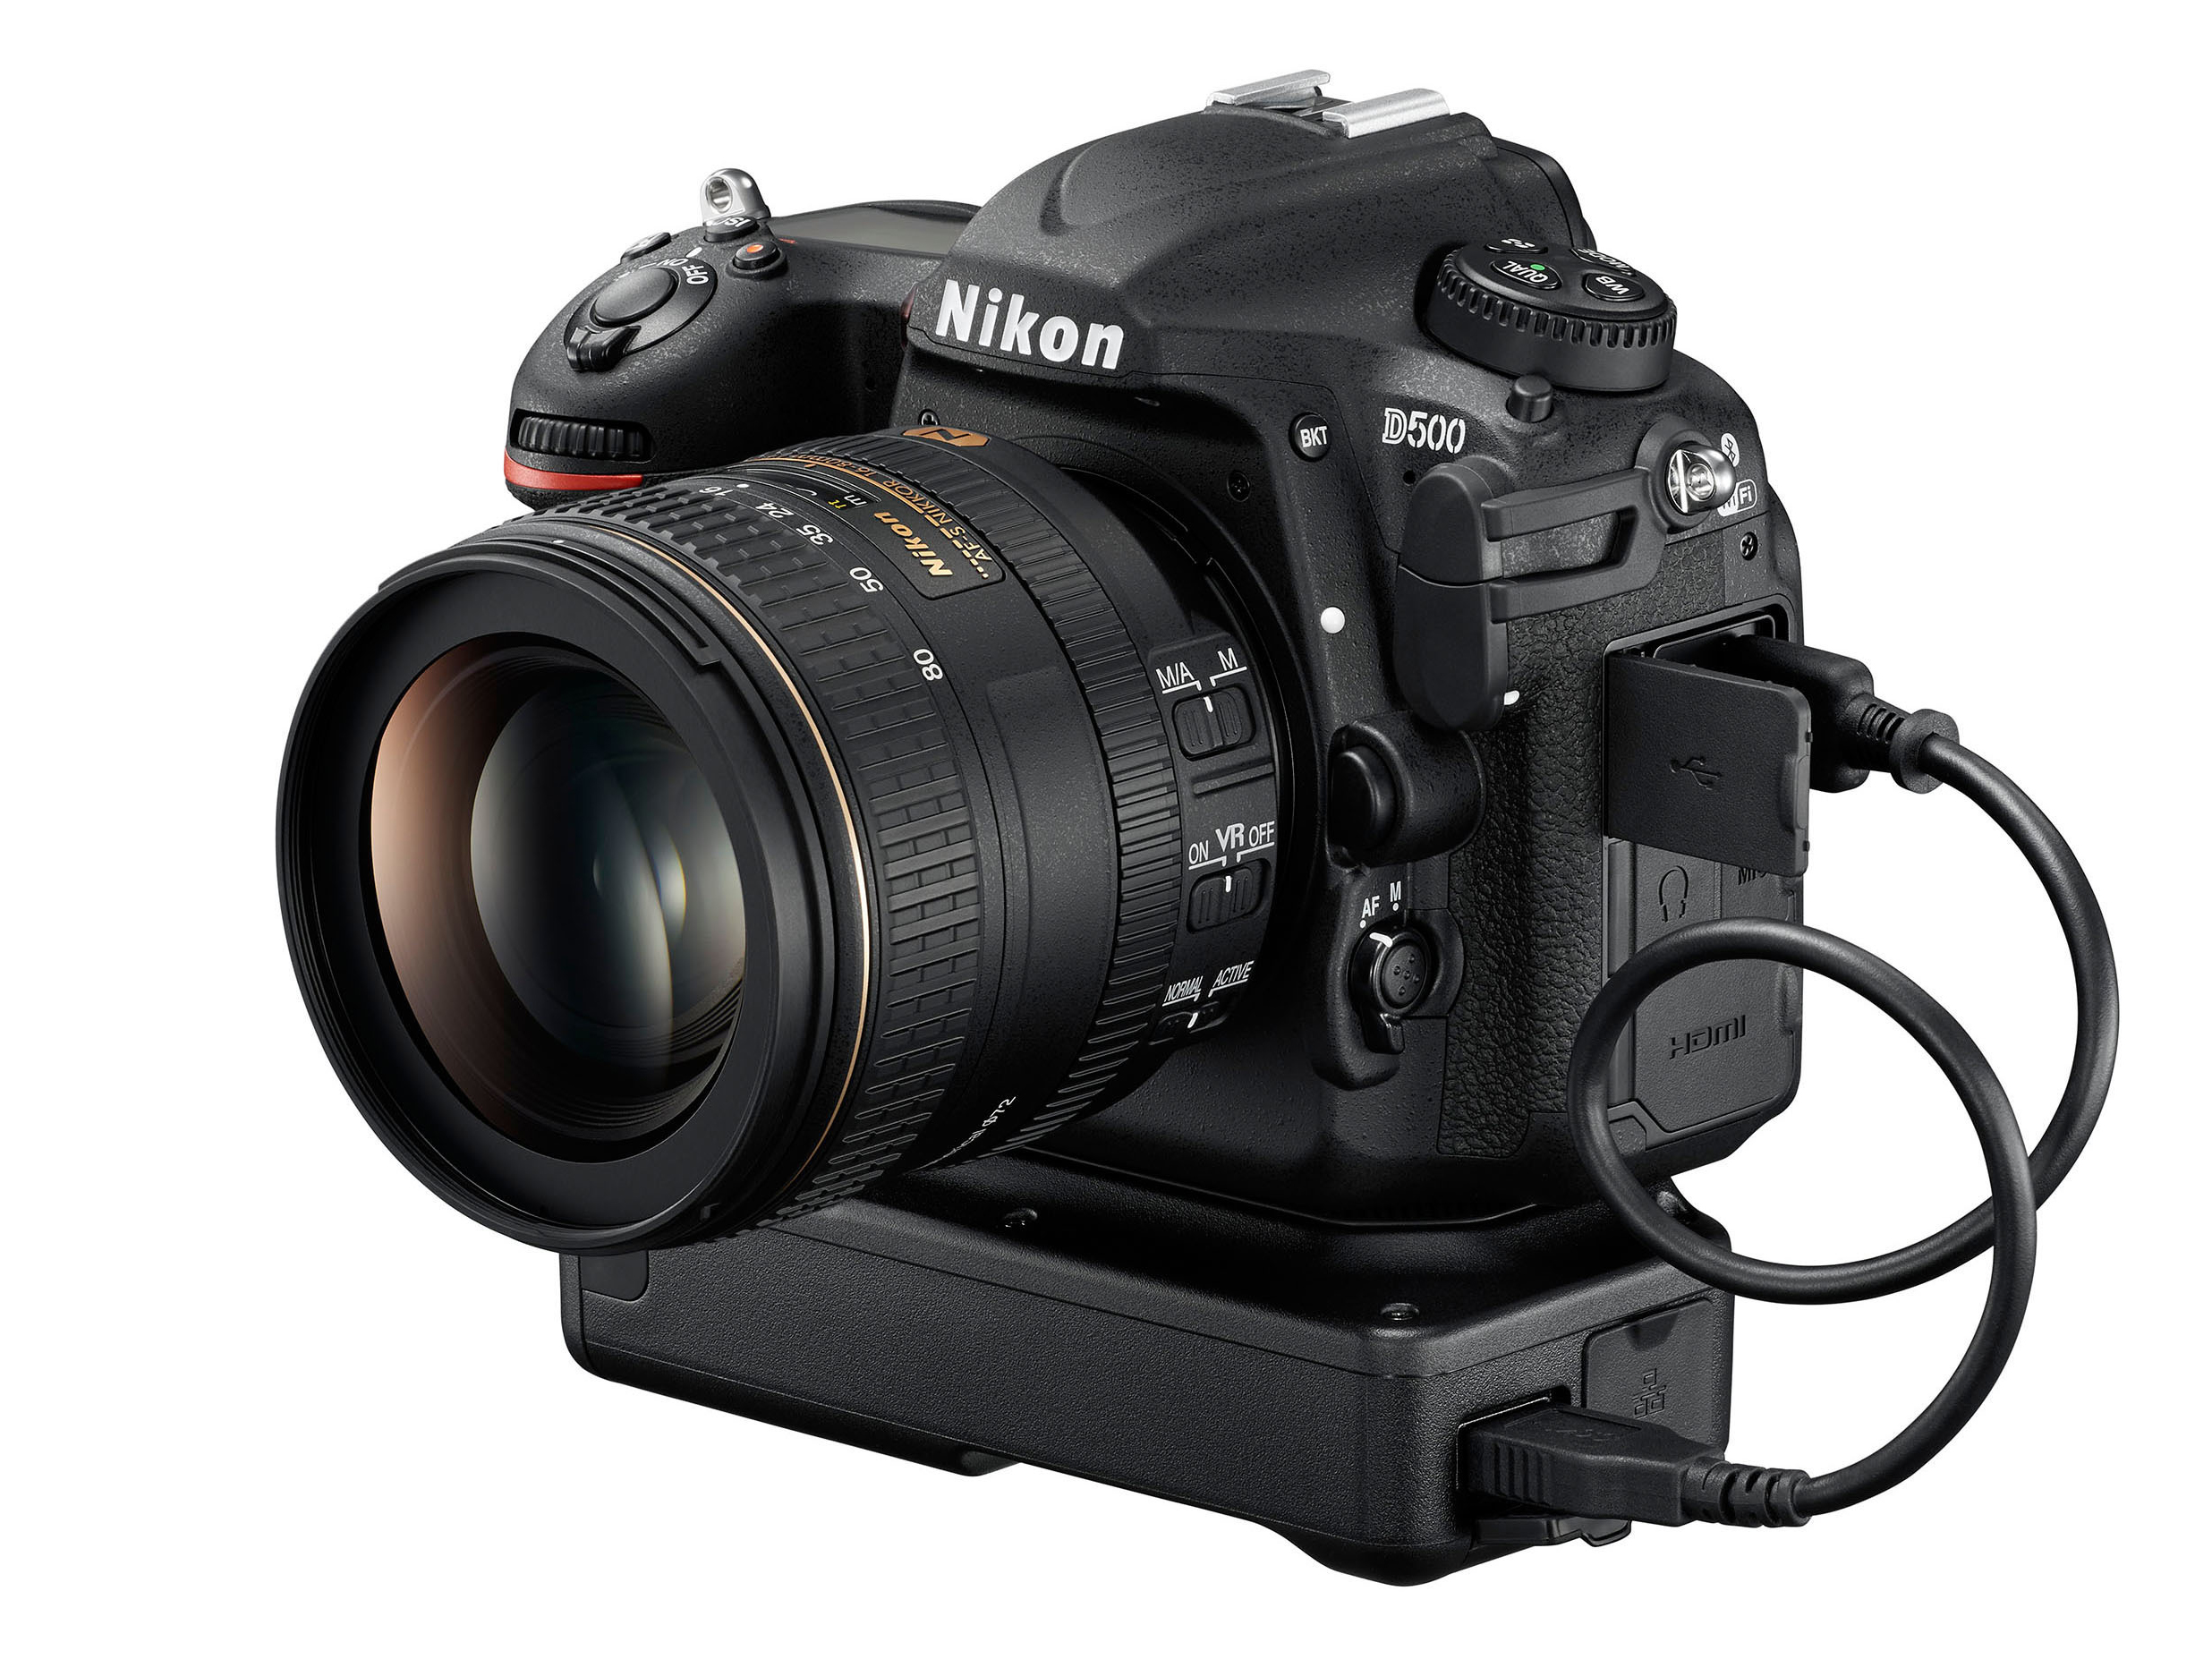 Nikon fixes bugs and adds compatibility for WT-7 Wi-Fi